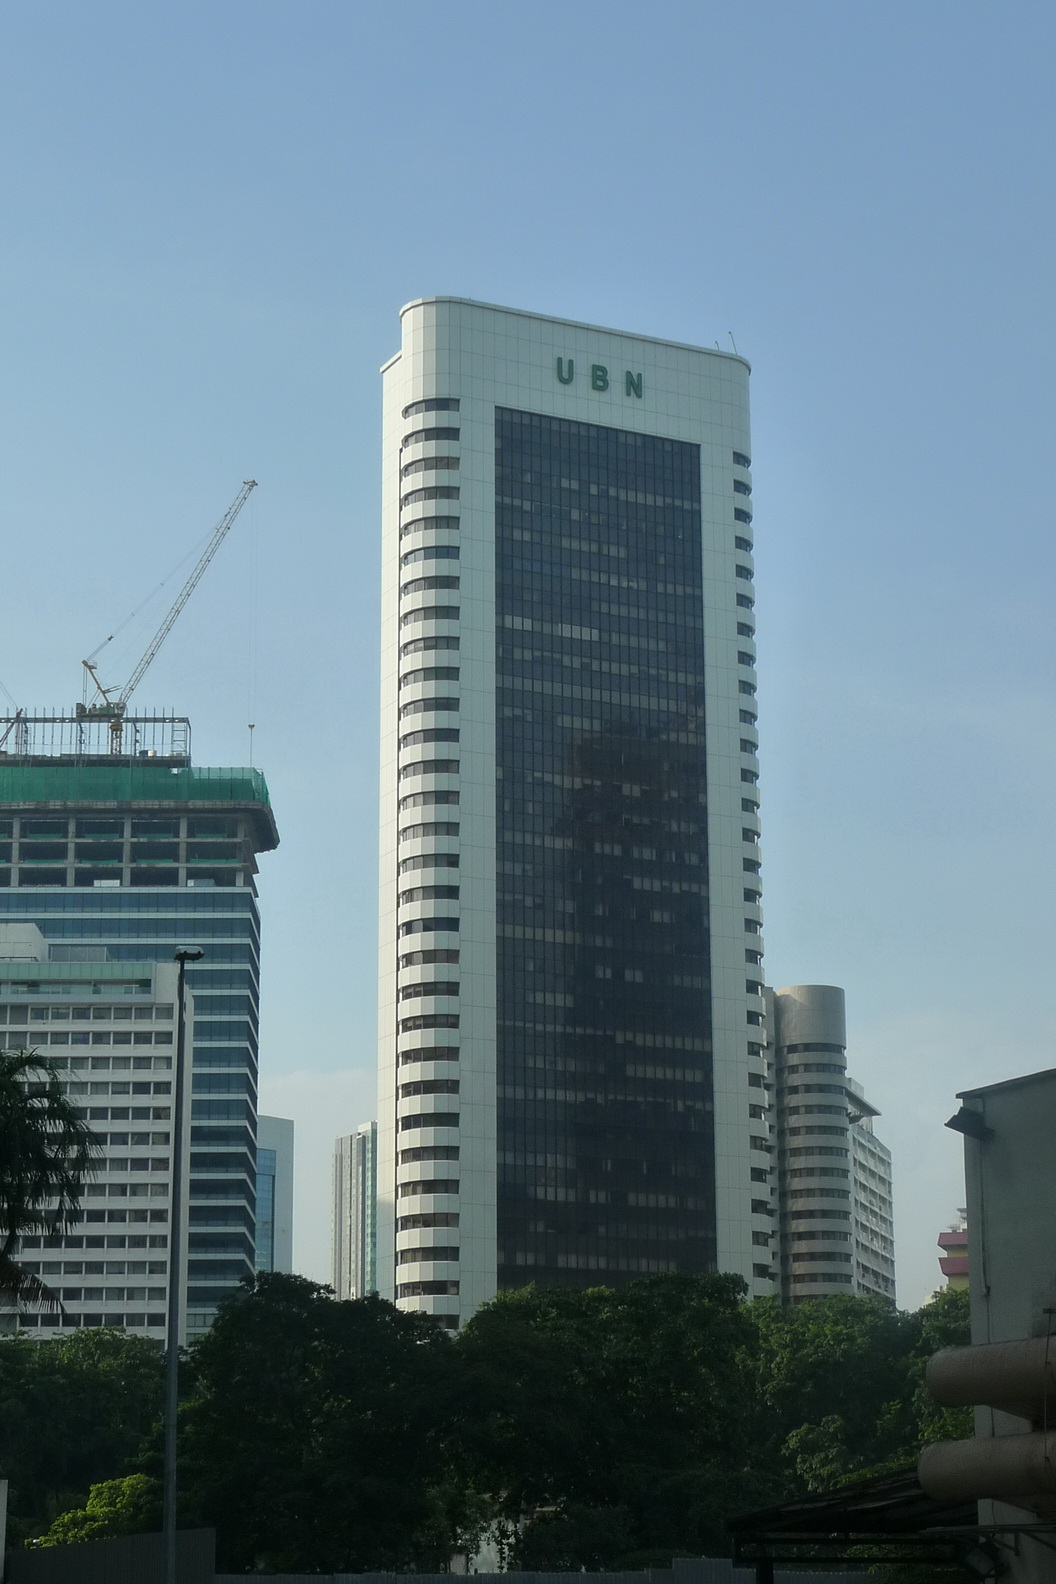 UBN TOWER